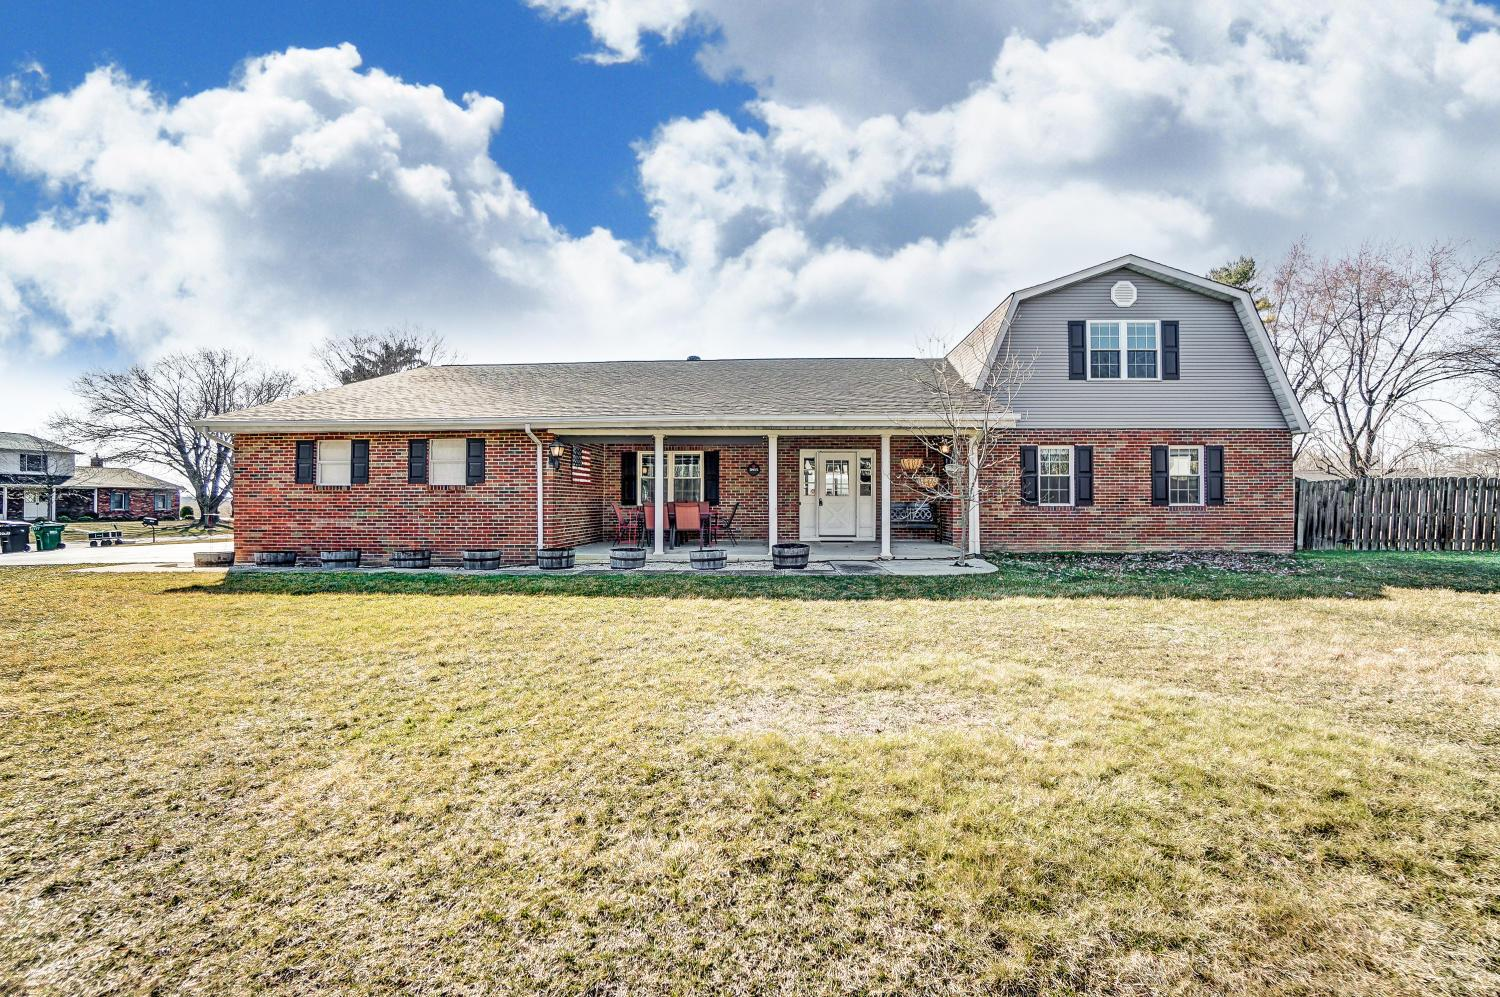 Photo of 2411 Granada Court N, Galloway, OH 43119